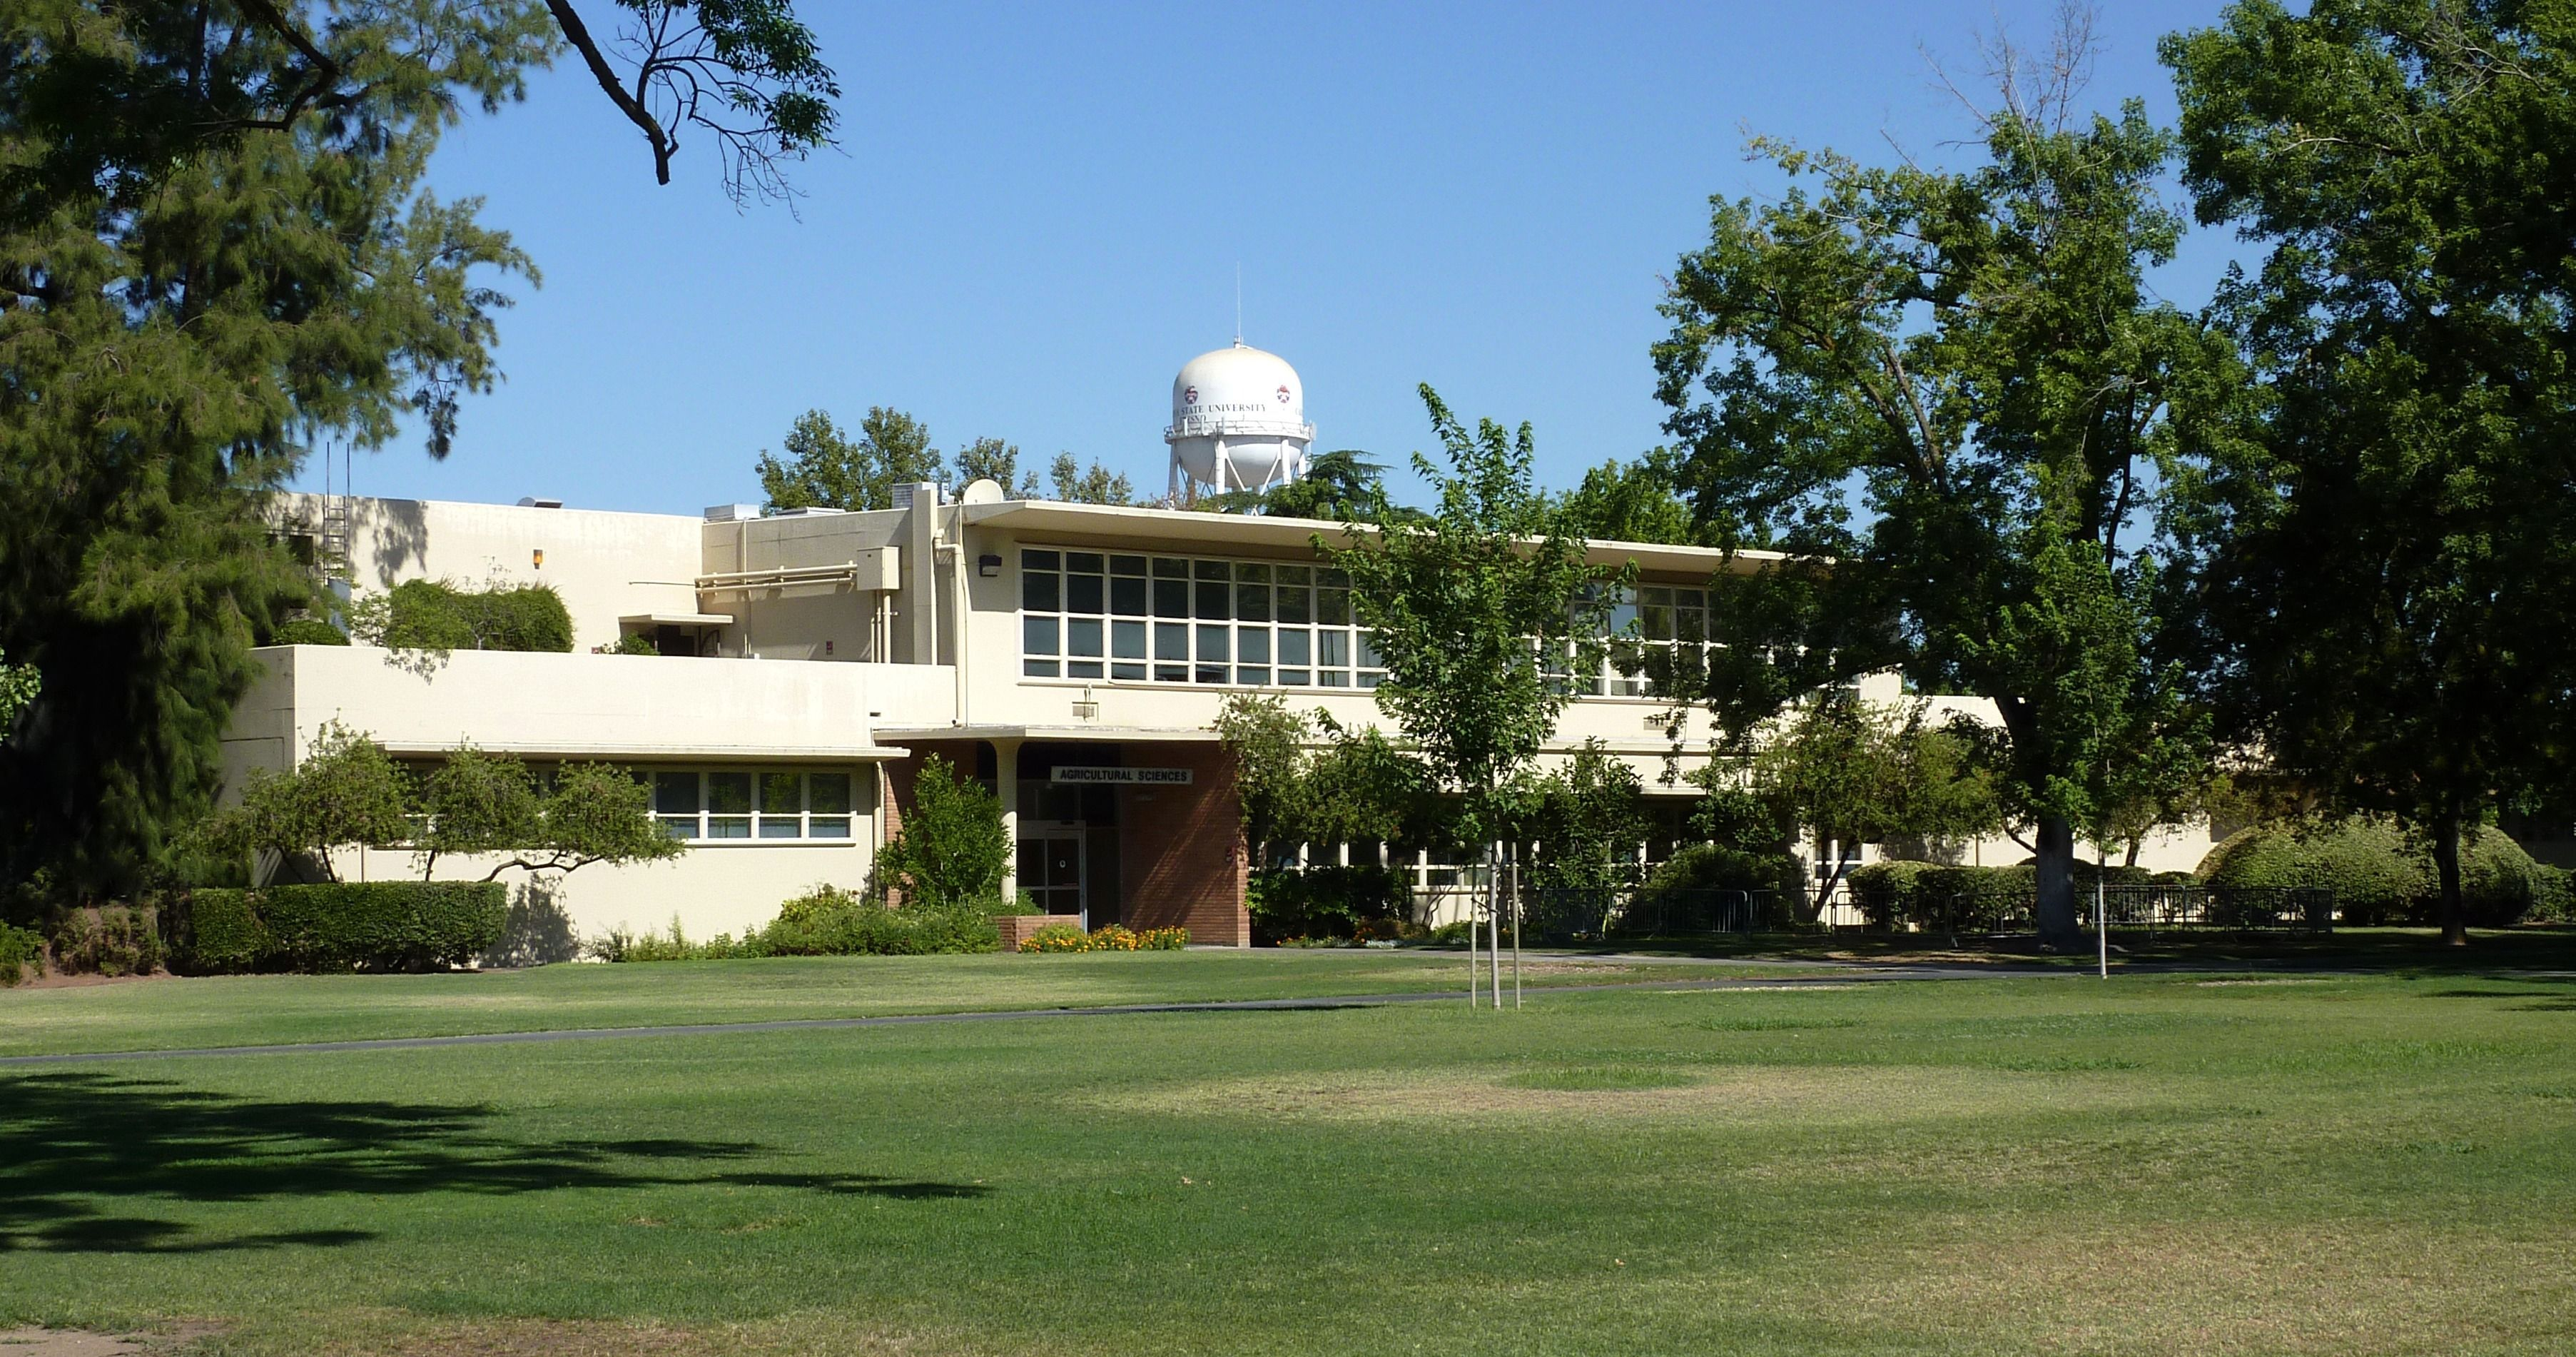 The Agriculture Building at Fresno State University.